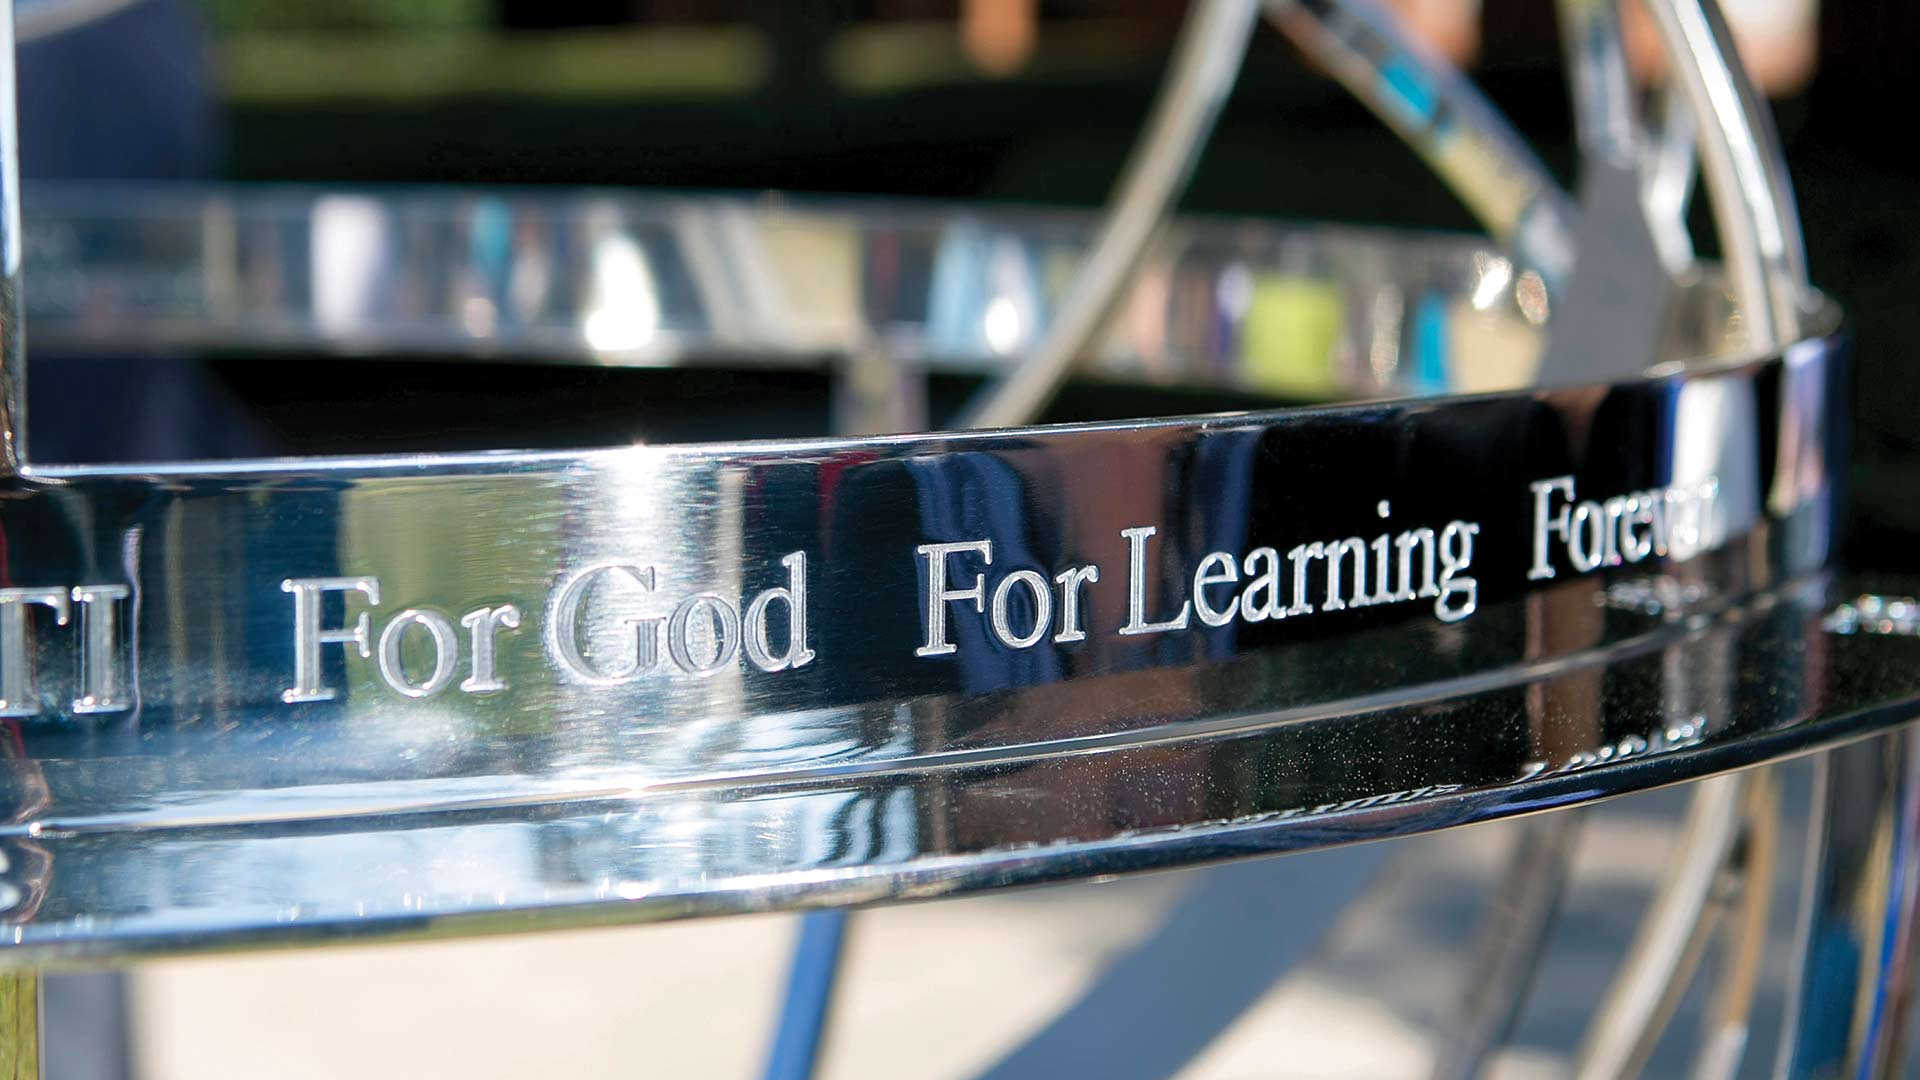 for god for learning forever sphere